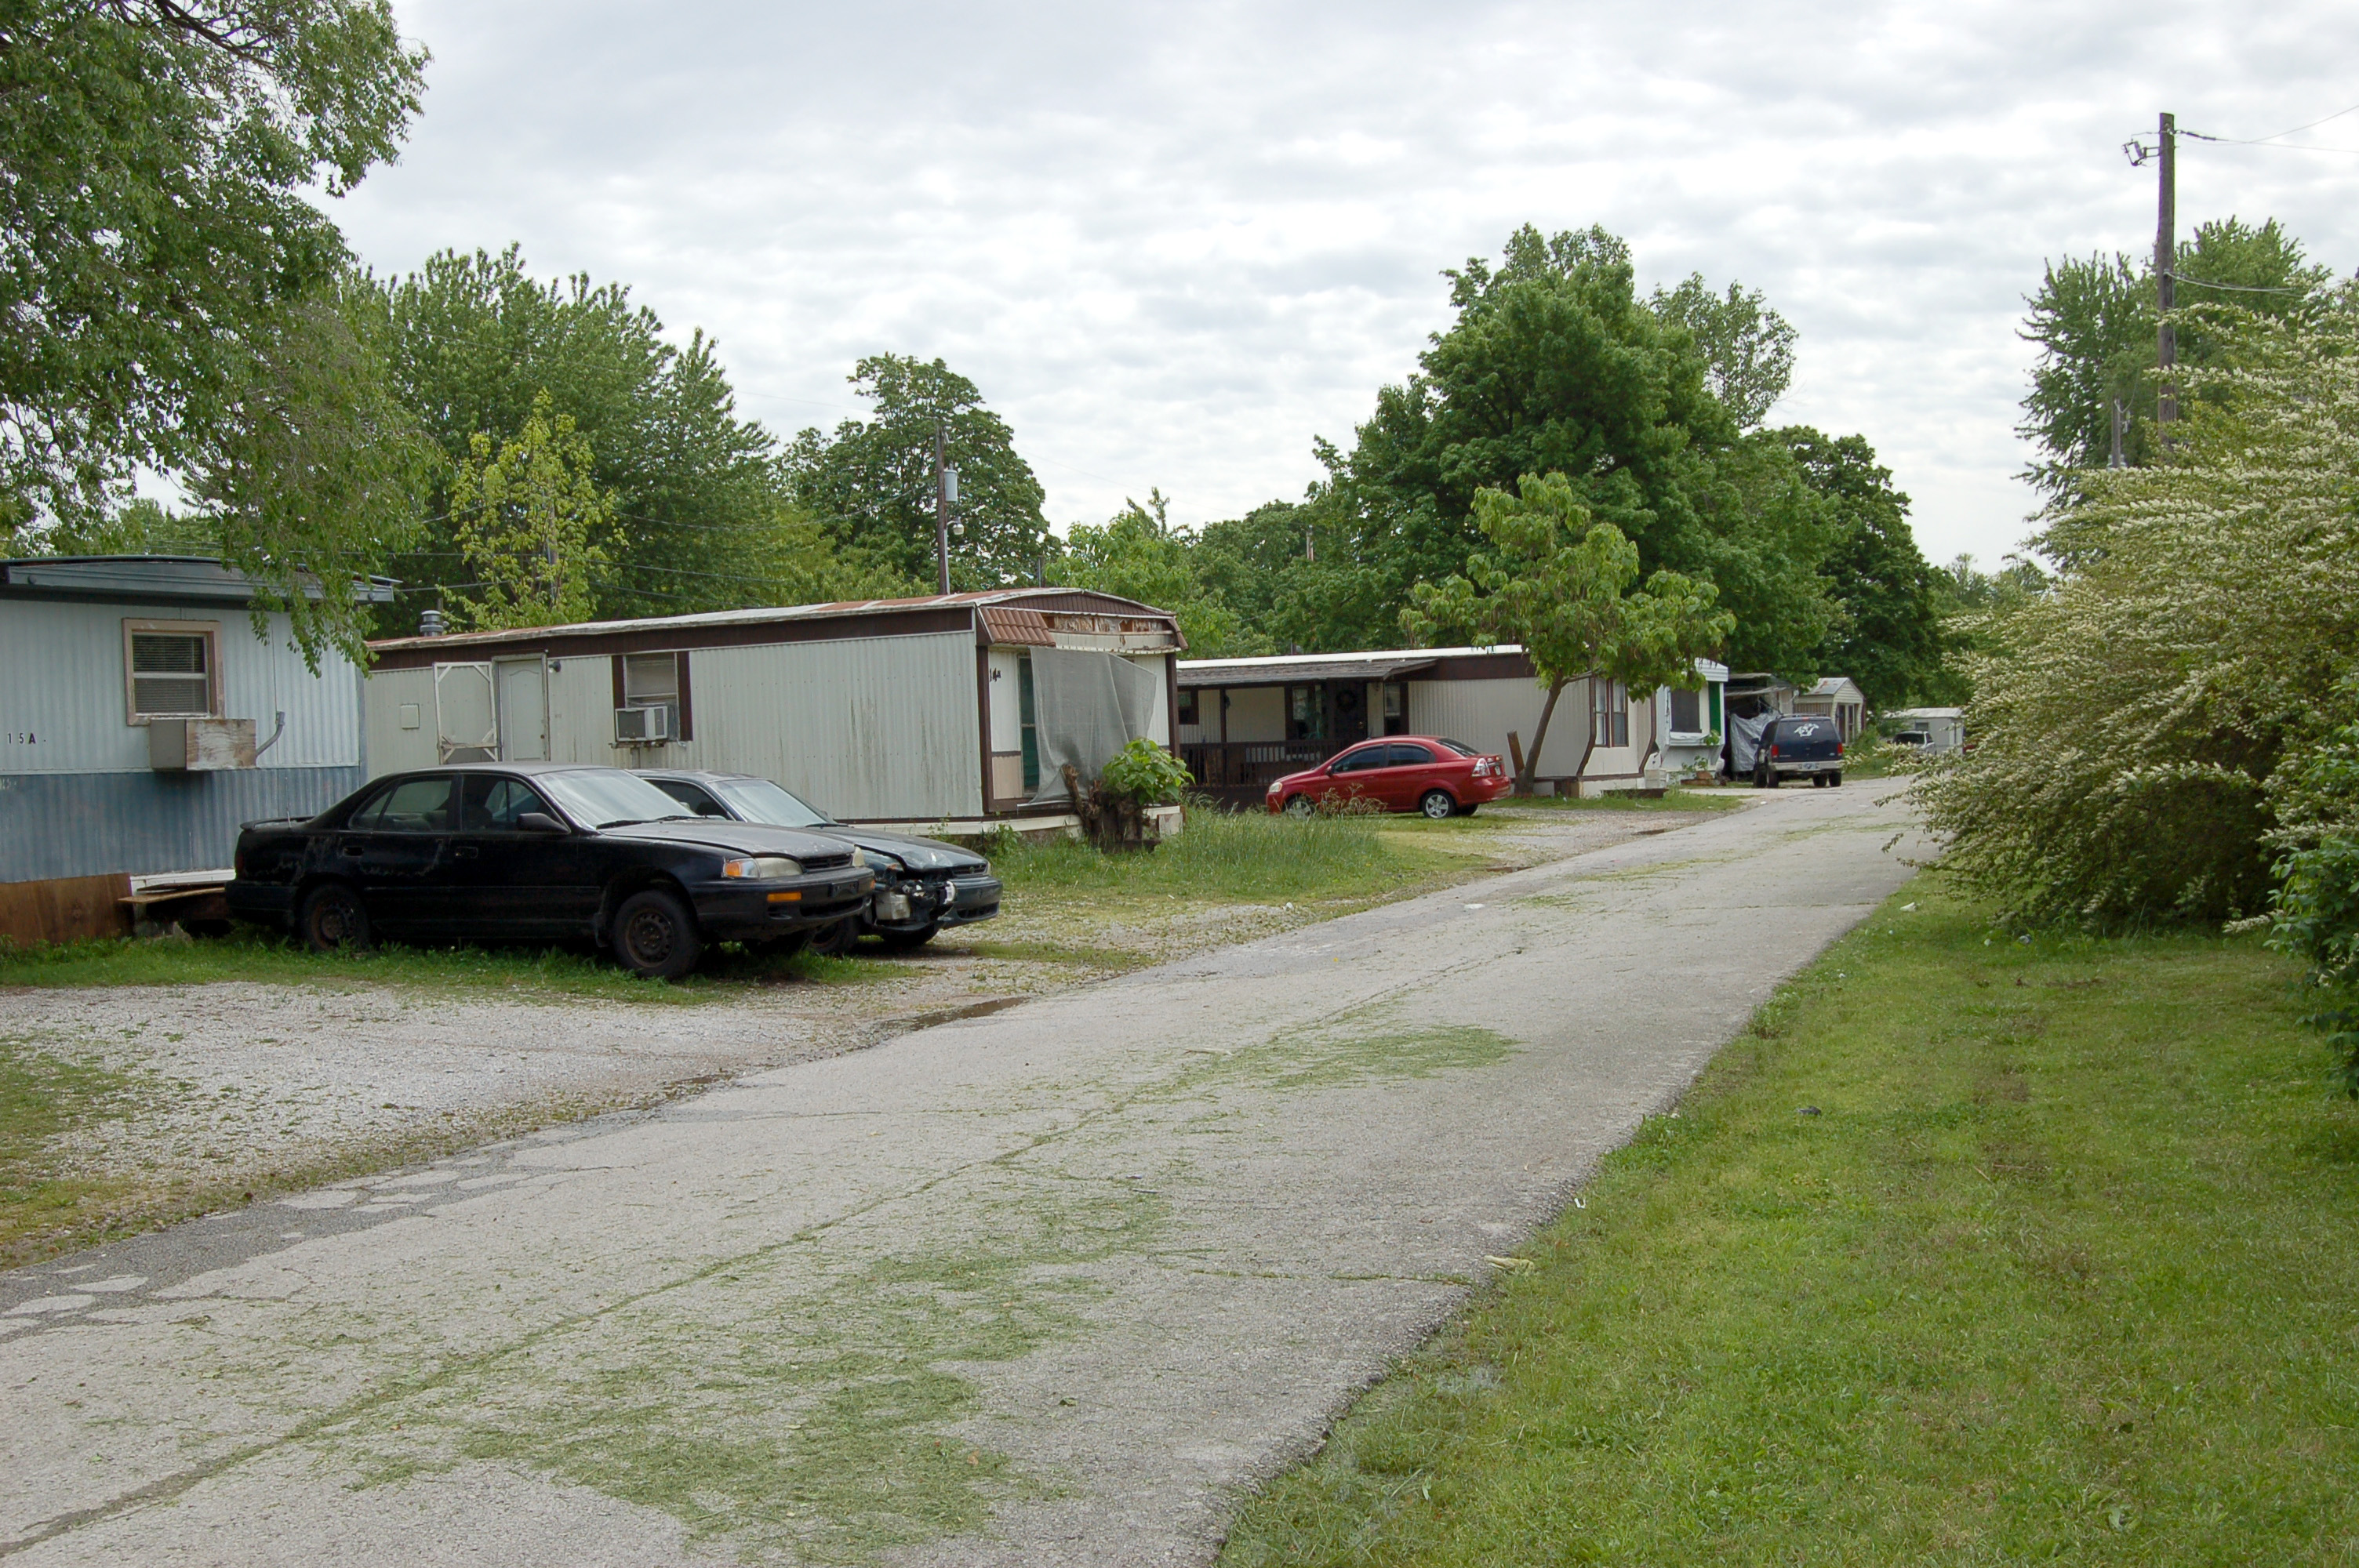 A Trailer Park With About 50 Mobile Homes Can Be